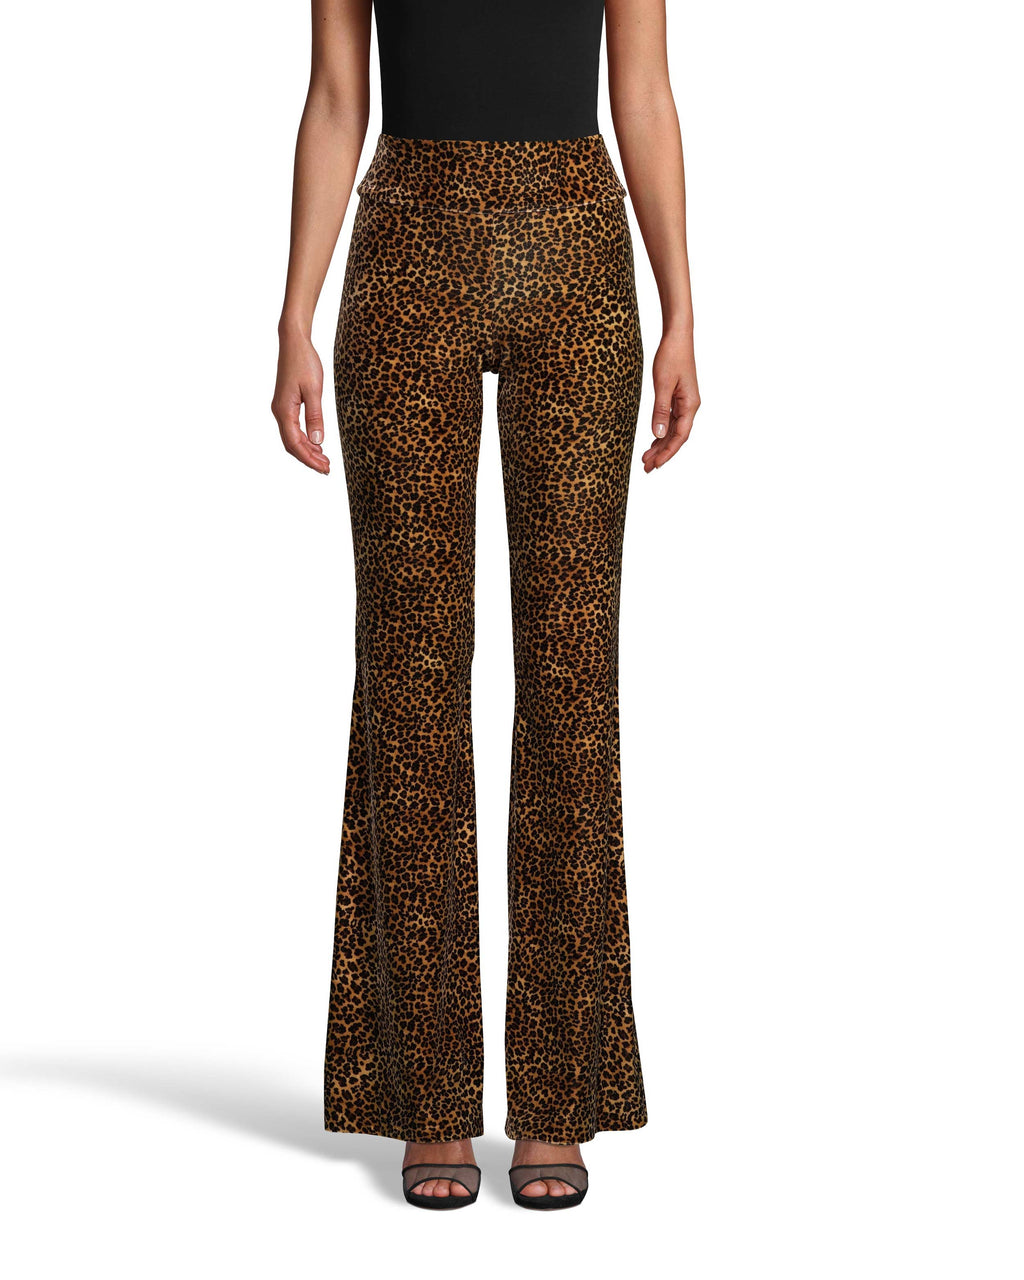 CP18121 - LEOPARD VELVET BELL BOTTOM PANT - bottoms - pants - From WFH to date night, these comfortable but flattering pull on pants will be on repeat all fall long. Crafted from soft leopard printed velvet with a bell bottom hem. Add 1 line break Stylist tip: Pair with a black cashmere sweater for day and a cami for evening.